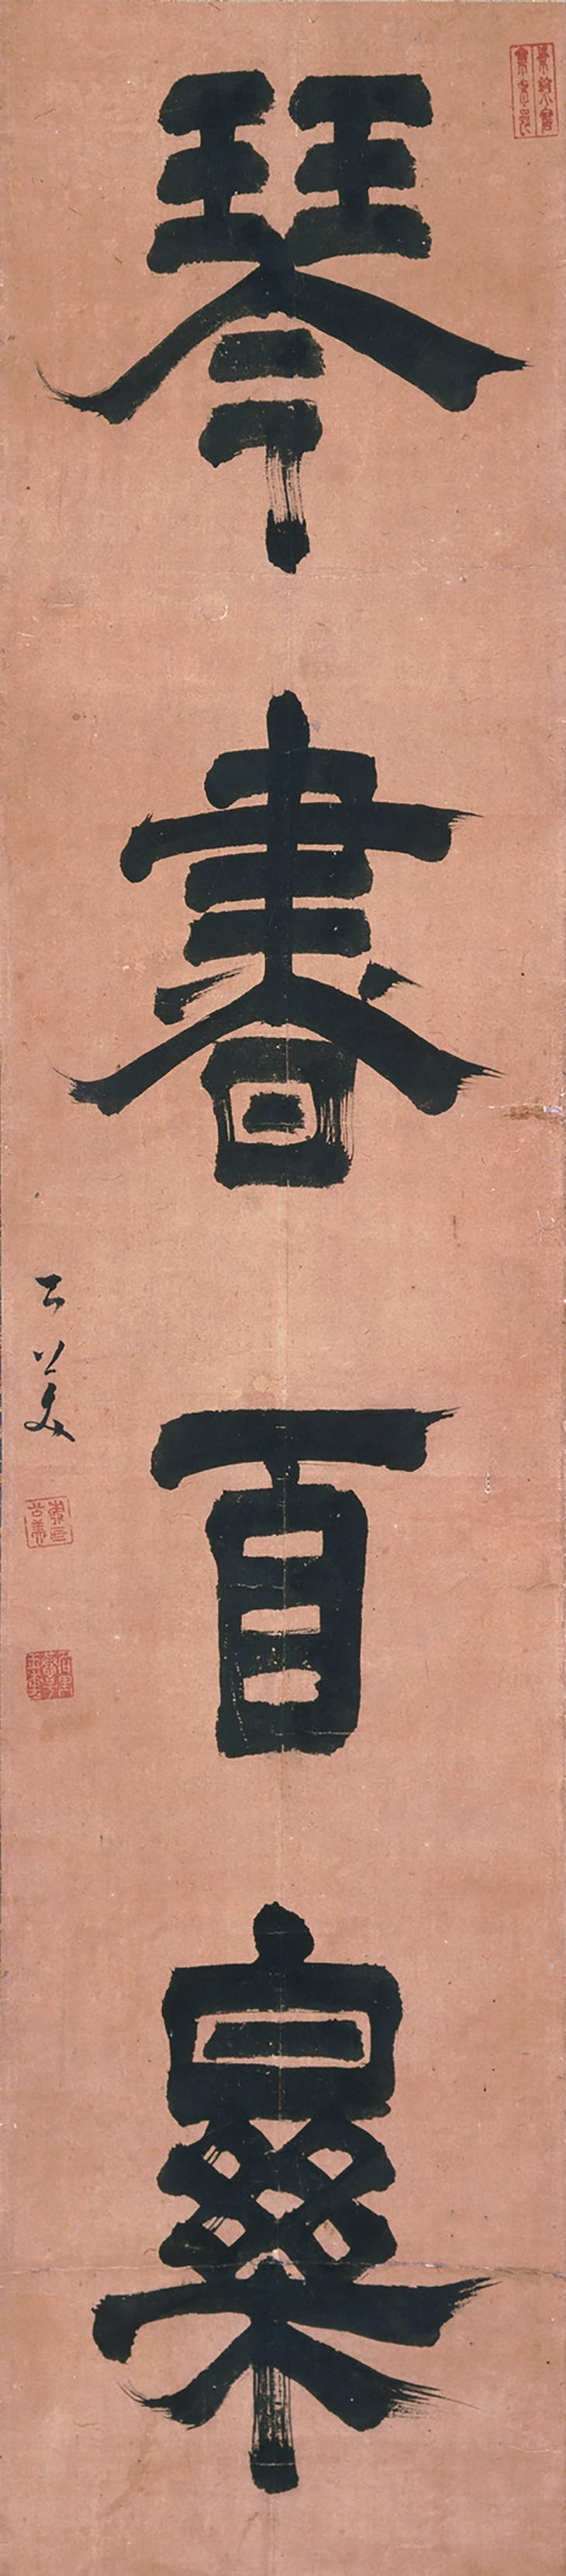 Qin and Calligraphy–100 Delights (mid 18th century), Yanagisawa Kien